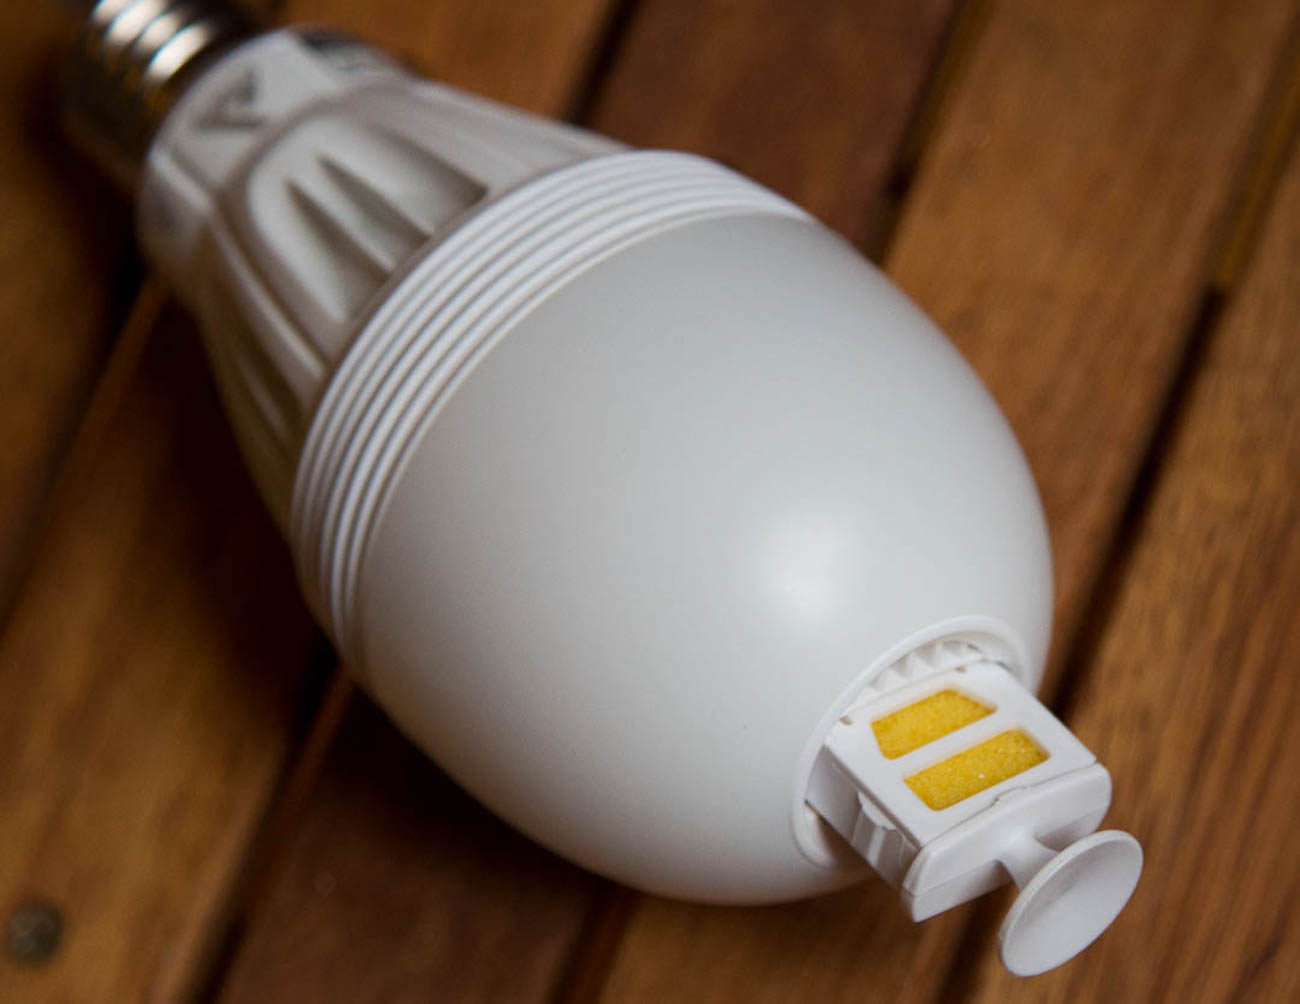 Aromalight Aroma Diffusing Light Bulb By Awox 187 Gadget Flow